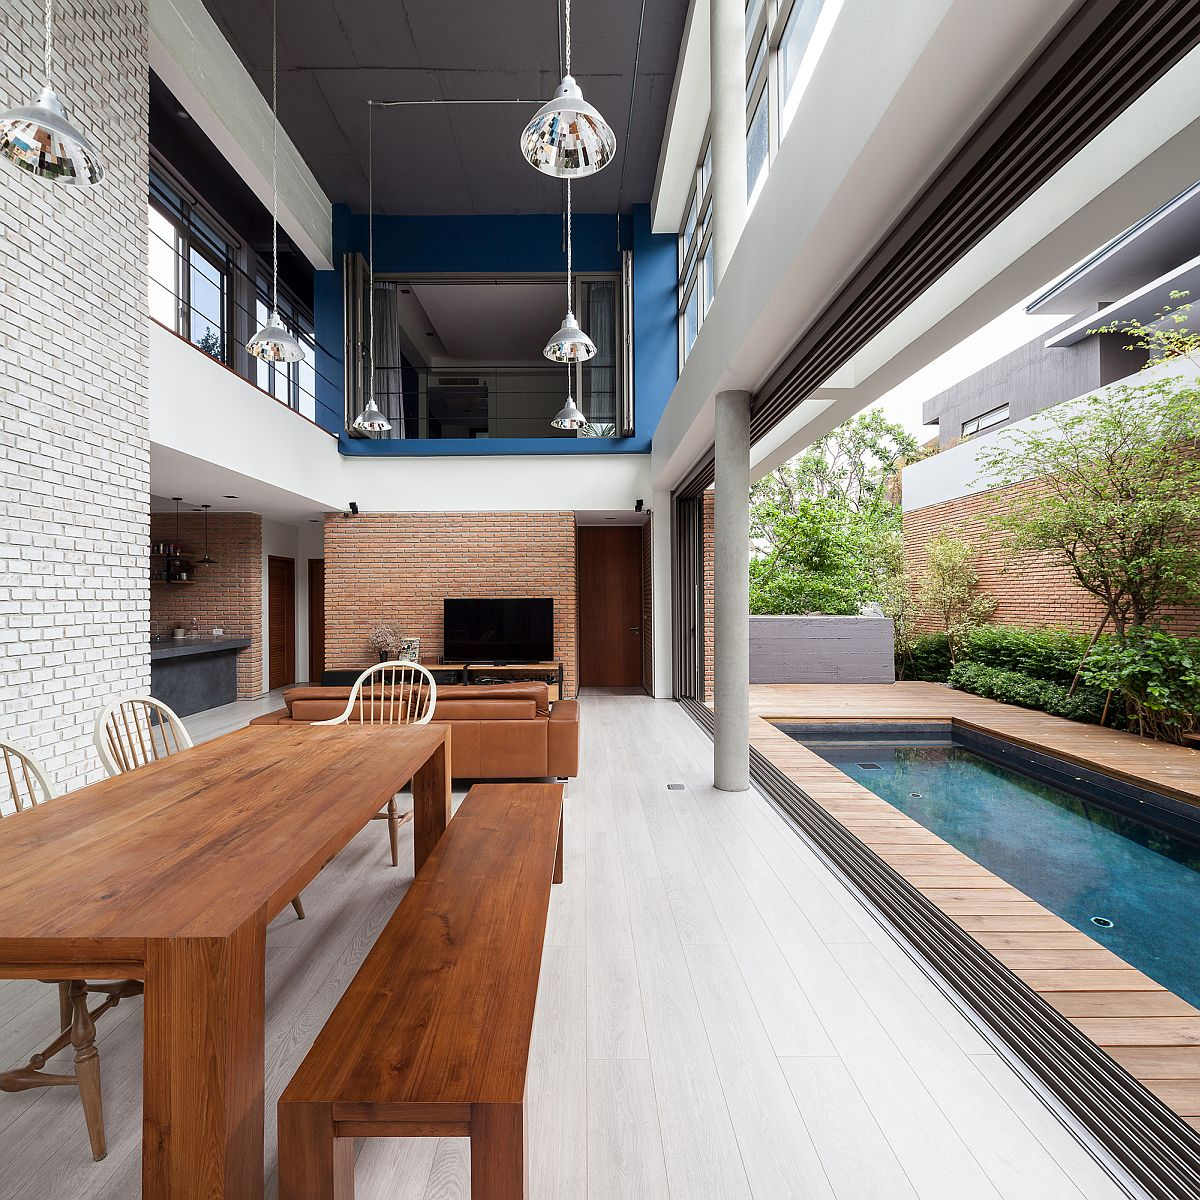 Styles Of Homes In Our Area: Industrial And Modern Side By Side: Two Houses In Bangkok